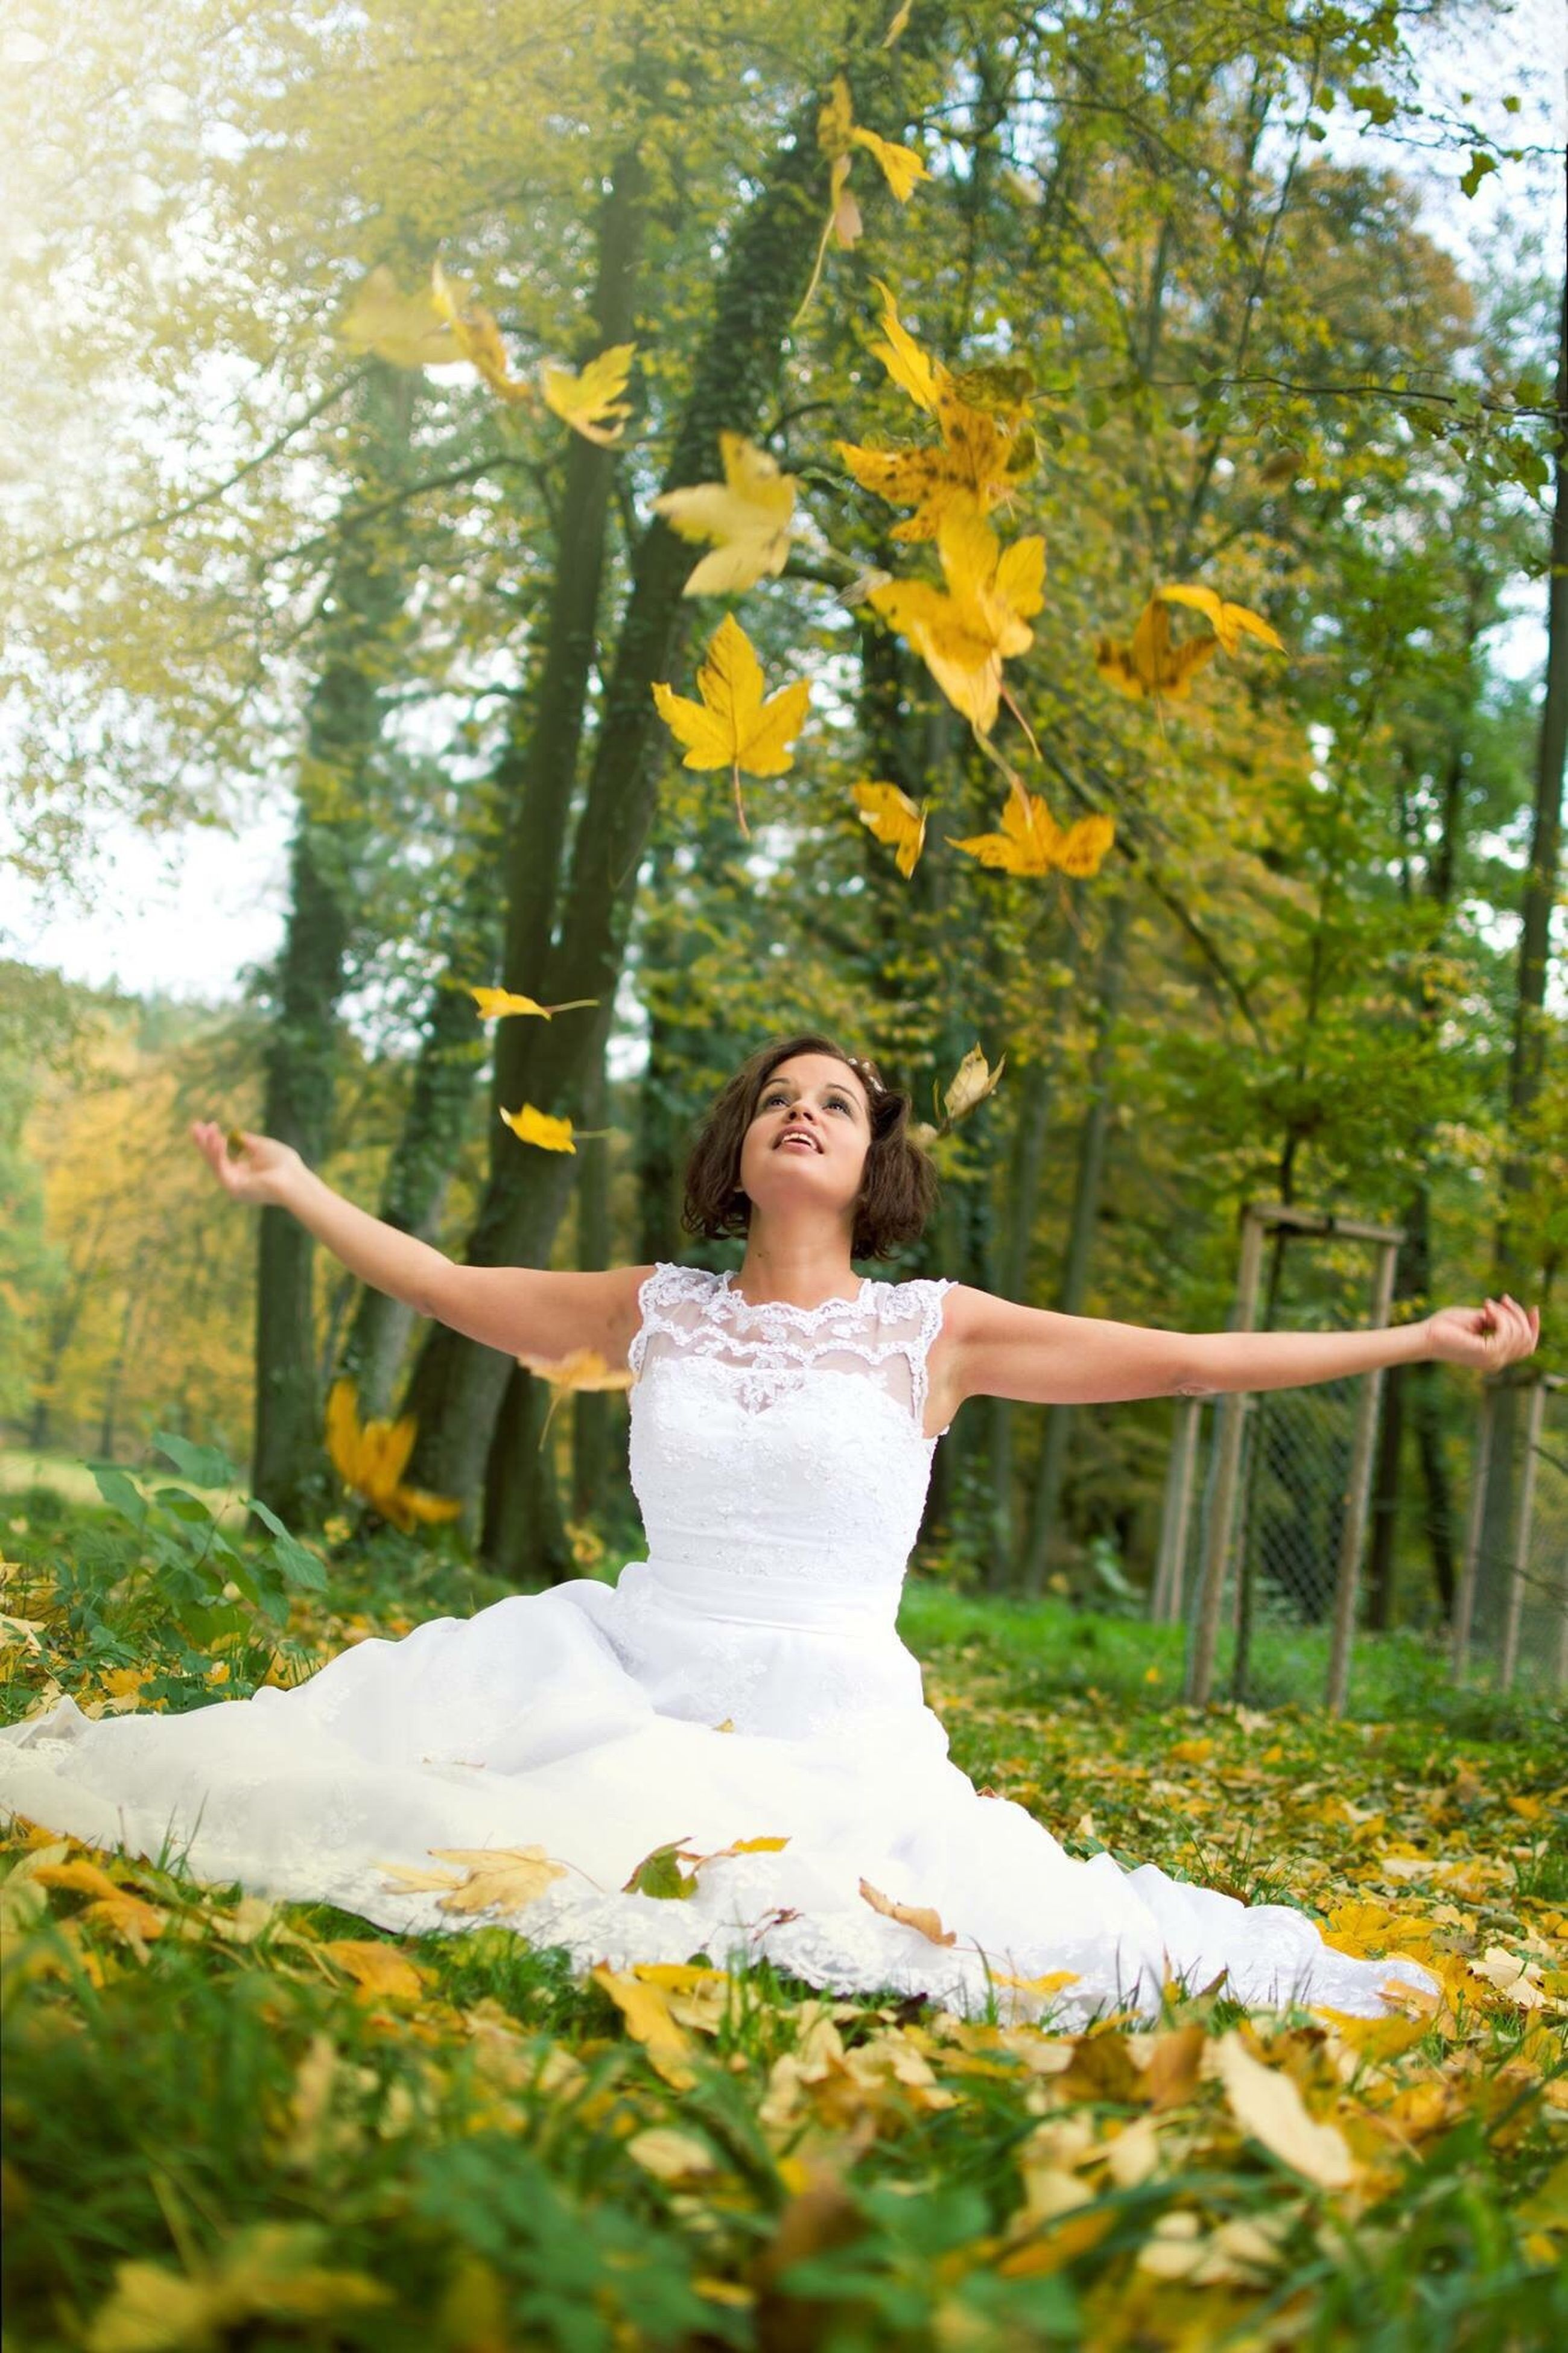 beauty, nature, arts culture and entertainment, tree, human body part, young adult, lifestyles, healthy lifestyle, beautiful people, yellow, wellbeing, flower, people, women, adult, time, one person, beauty in nature, charming, outdoors, space, cultures, freshness, day